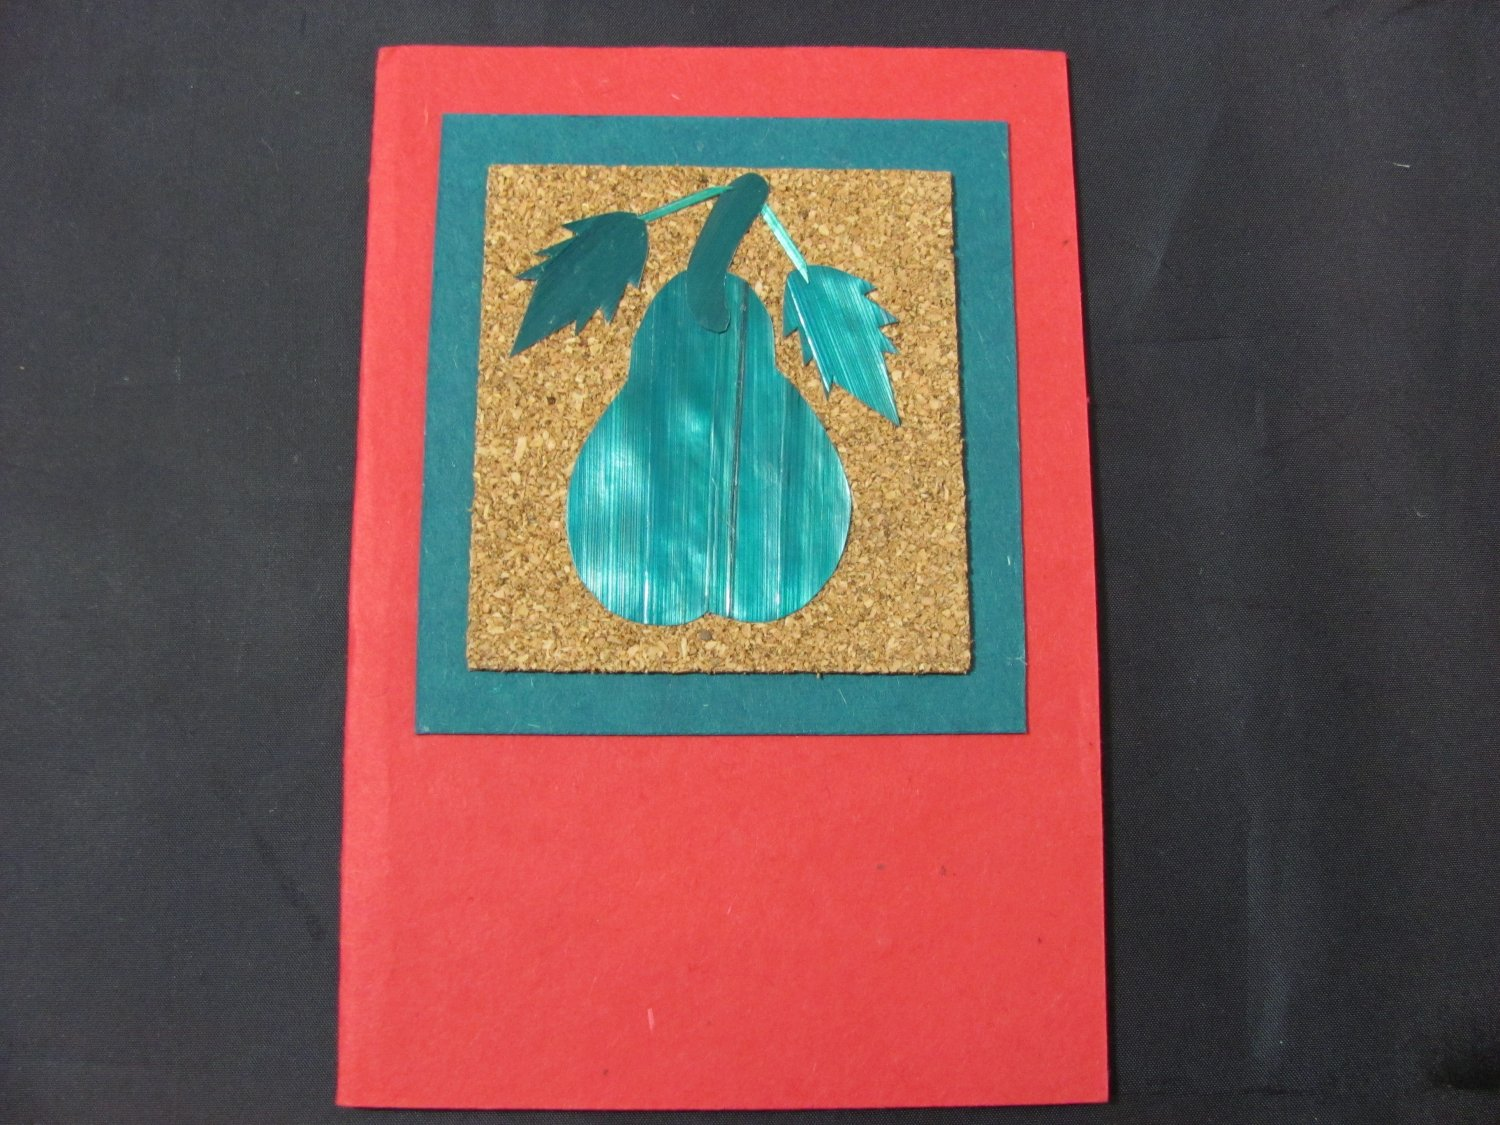 (FRT 01) Pear of Wheat Straw On Cork Handmade Greeting Card